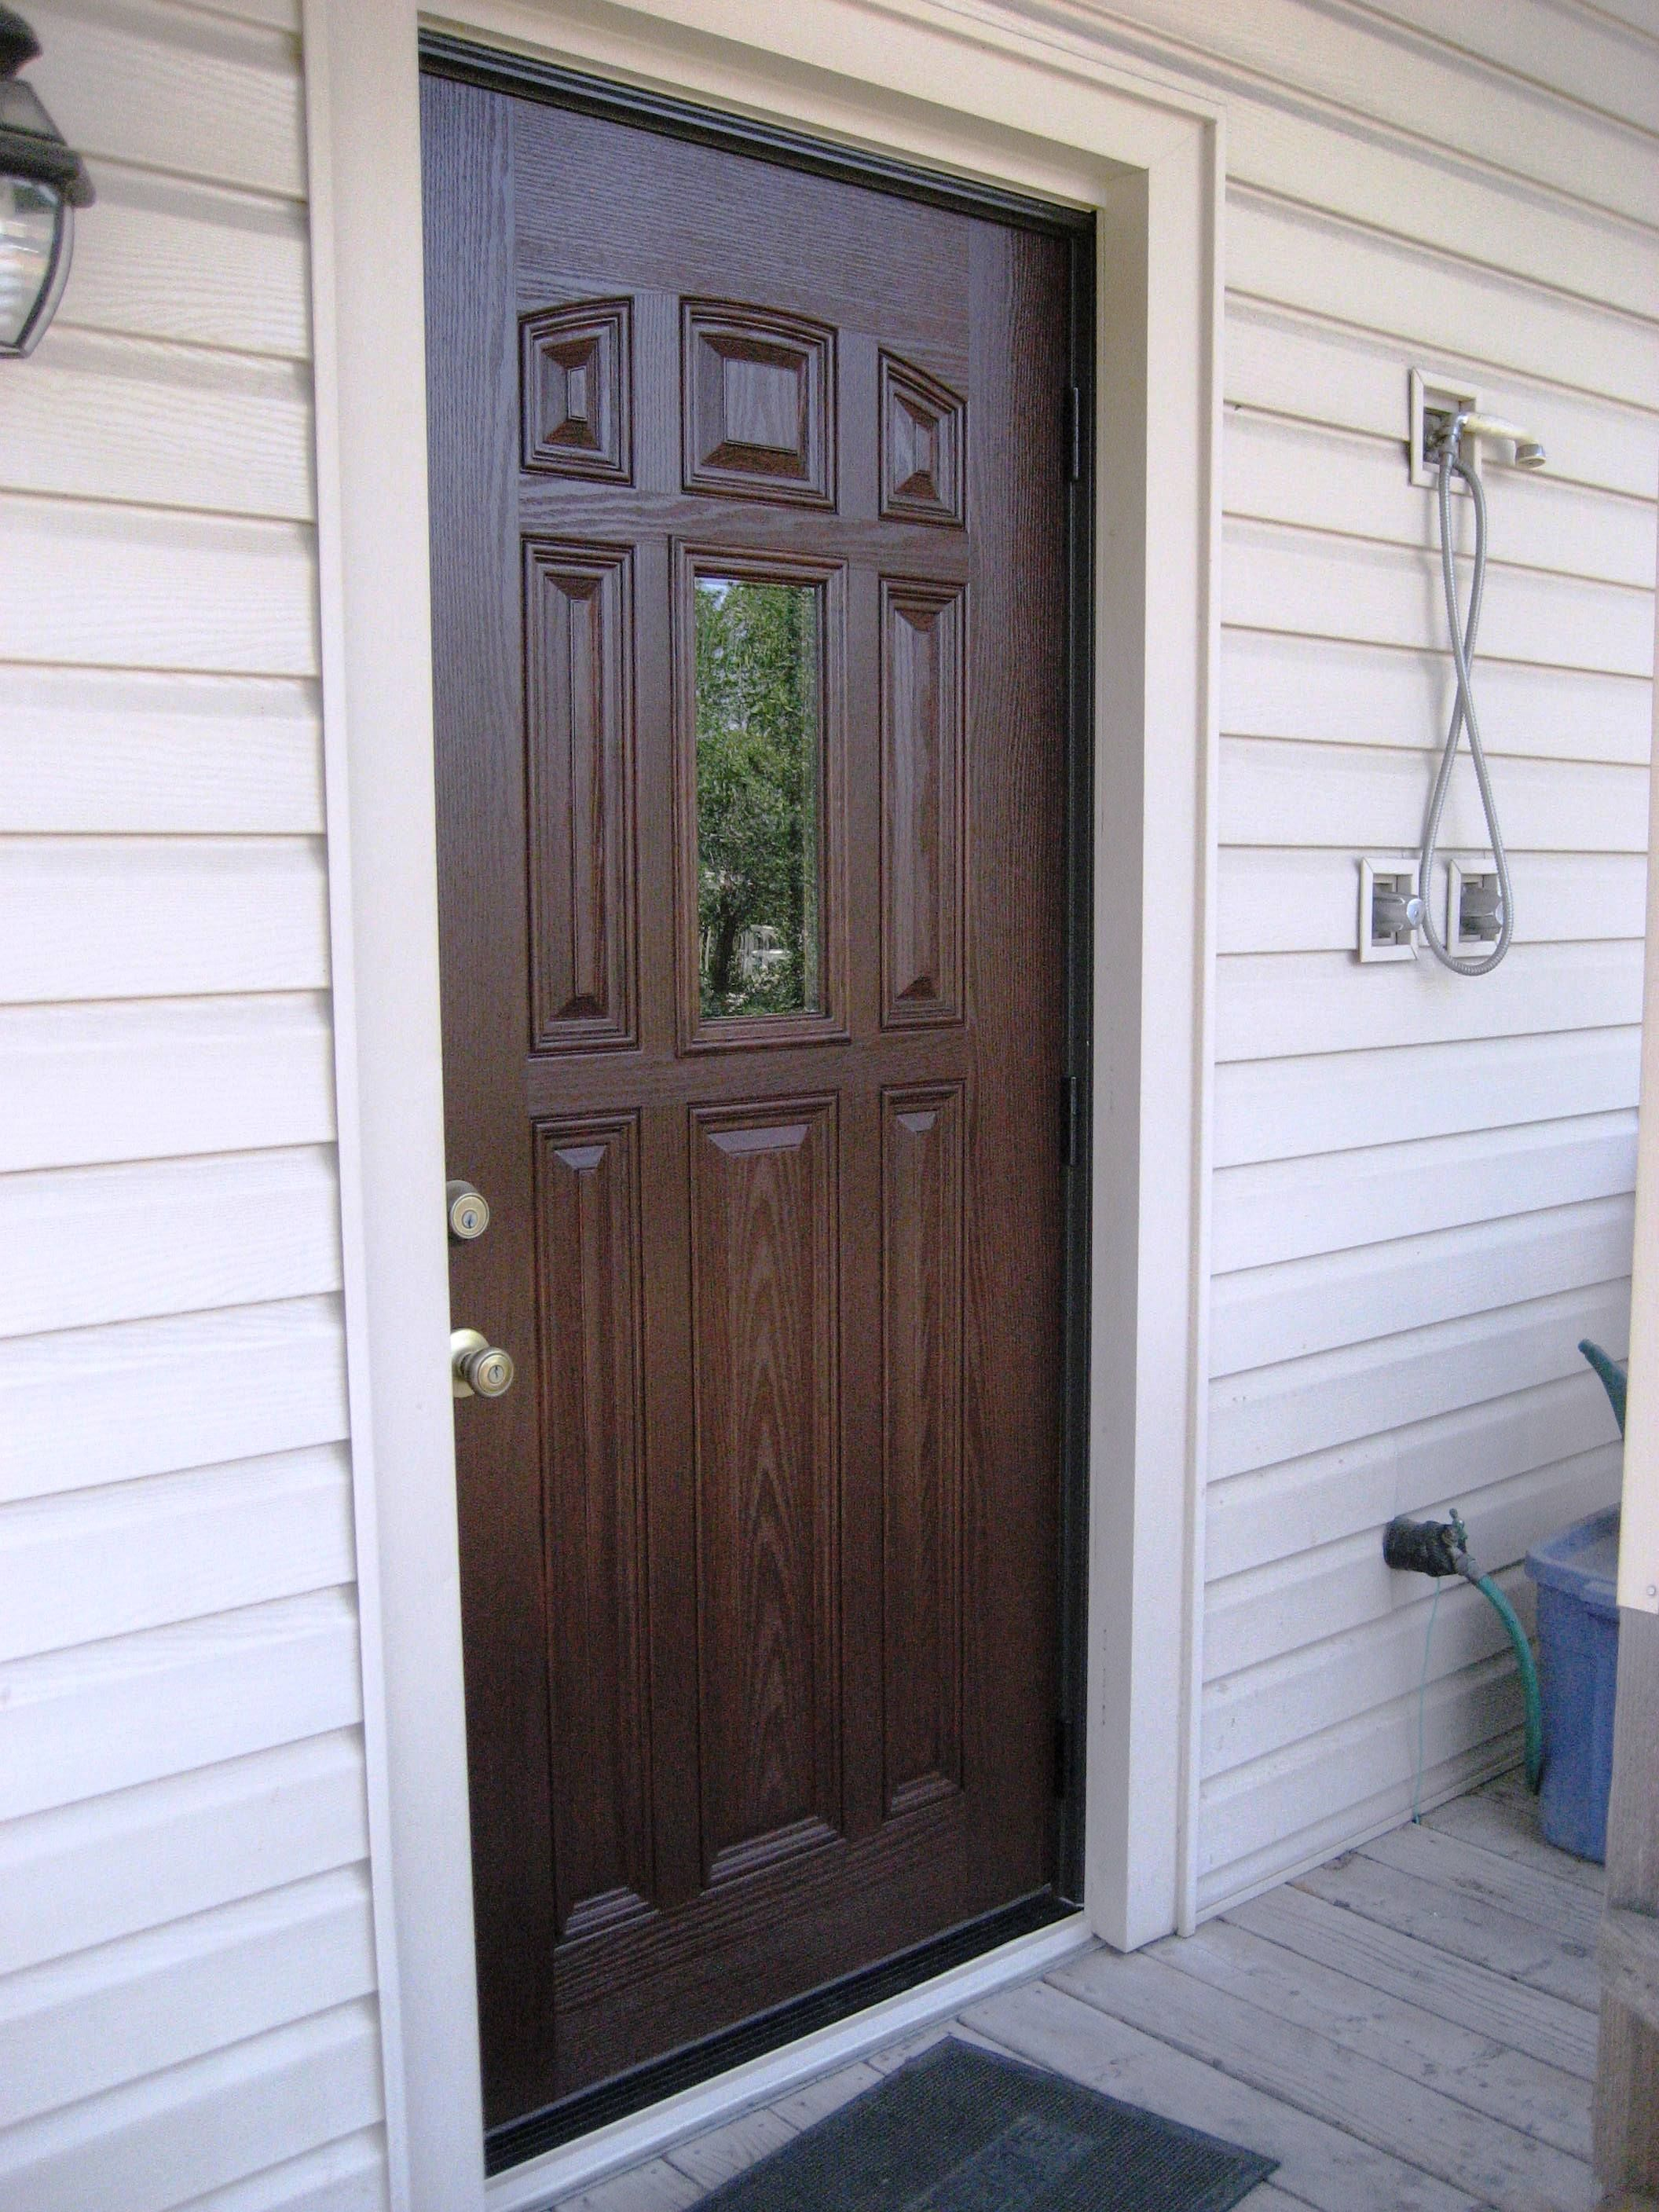 Inspirational Fiber Glass Entry Doors